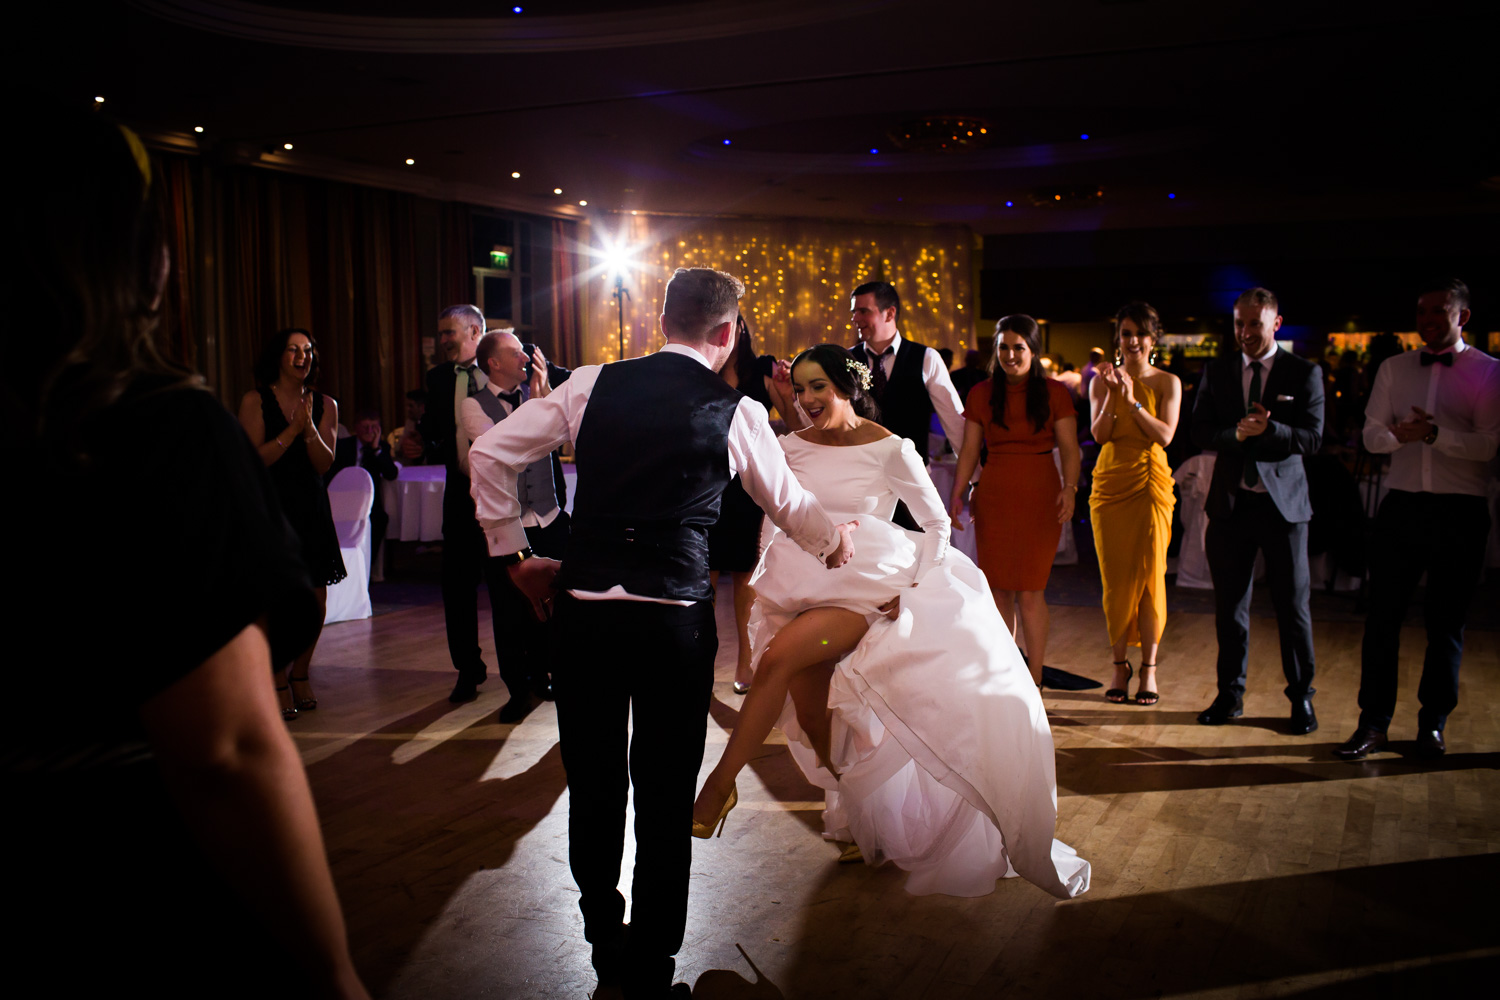 Mark_Barnes_Northern_Ireland_wedding_photographer_Innishowen_Gateway_Donegal_Wedding_photography_Donegal_wedding_photographer-81.jpg